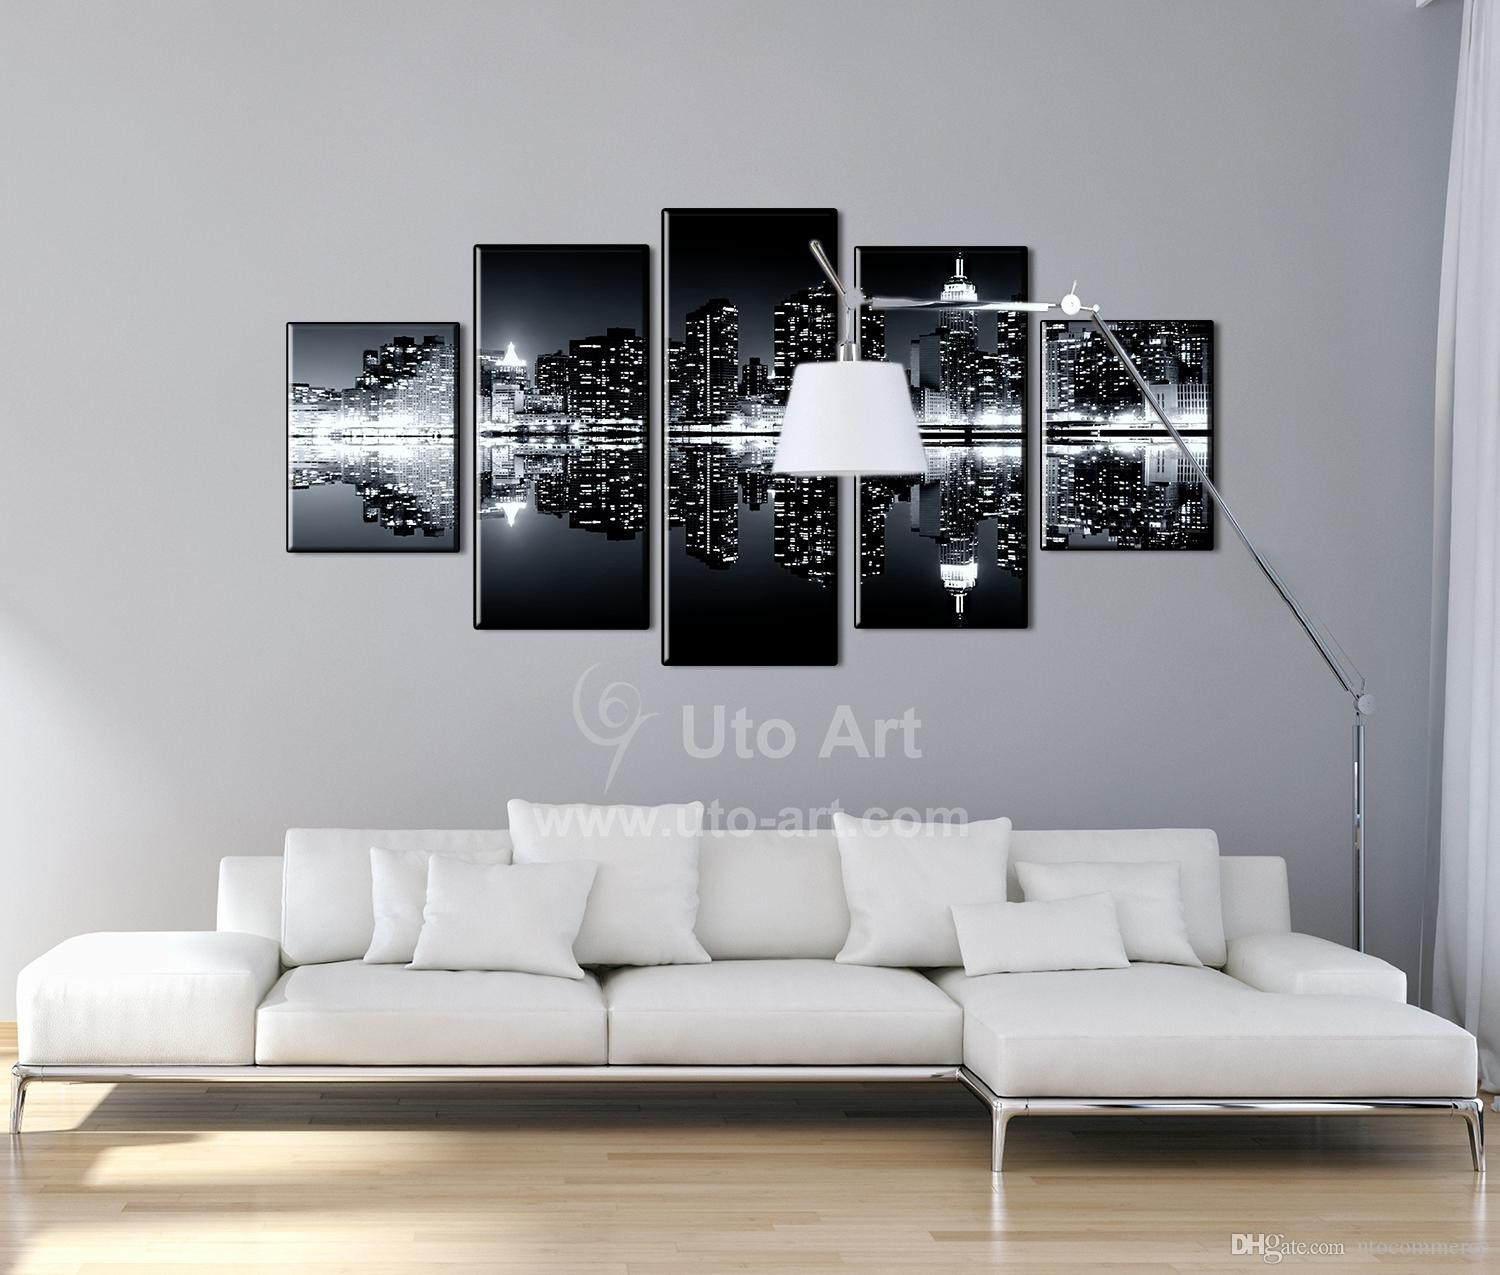 2018 Multi Panel Black Wall Decoration Inverted Image Canvas In 2018 Ku Canvas Wall Art (View 13 of 15)